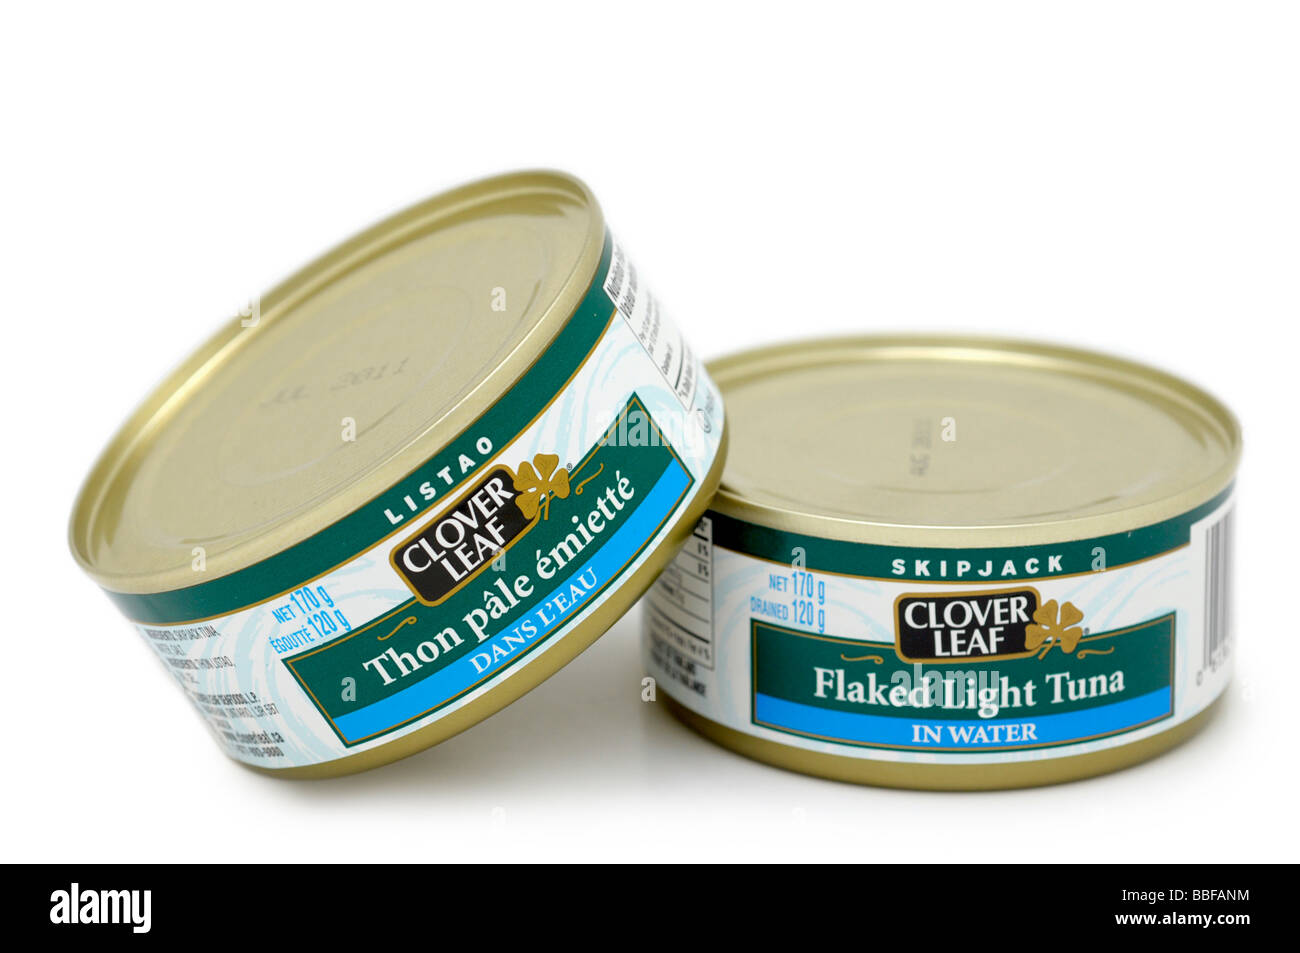 Tins of Flaked Light Tuna in Water - Stock Image